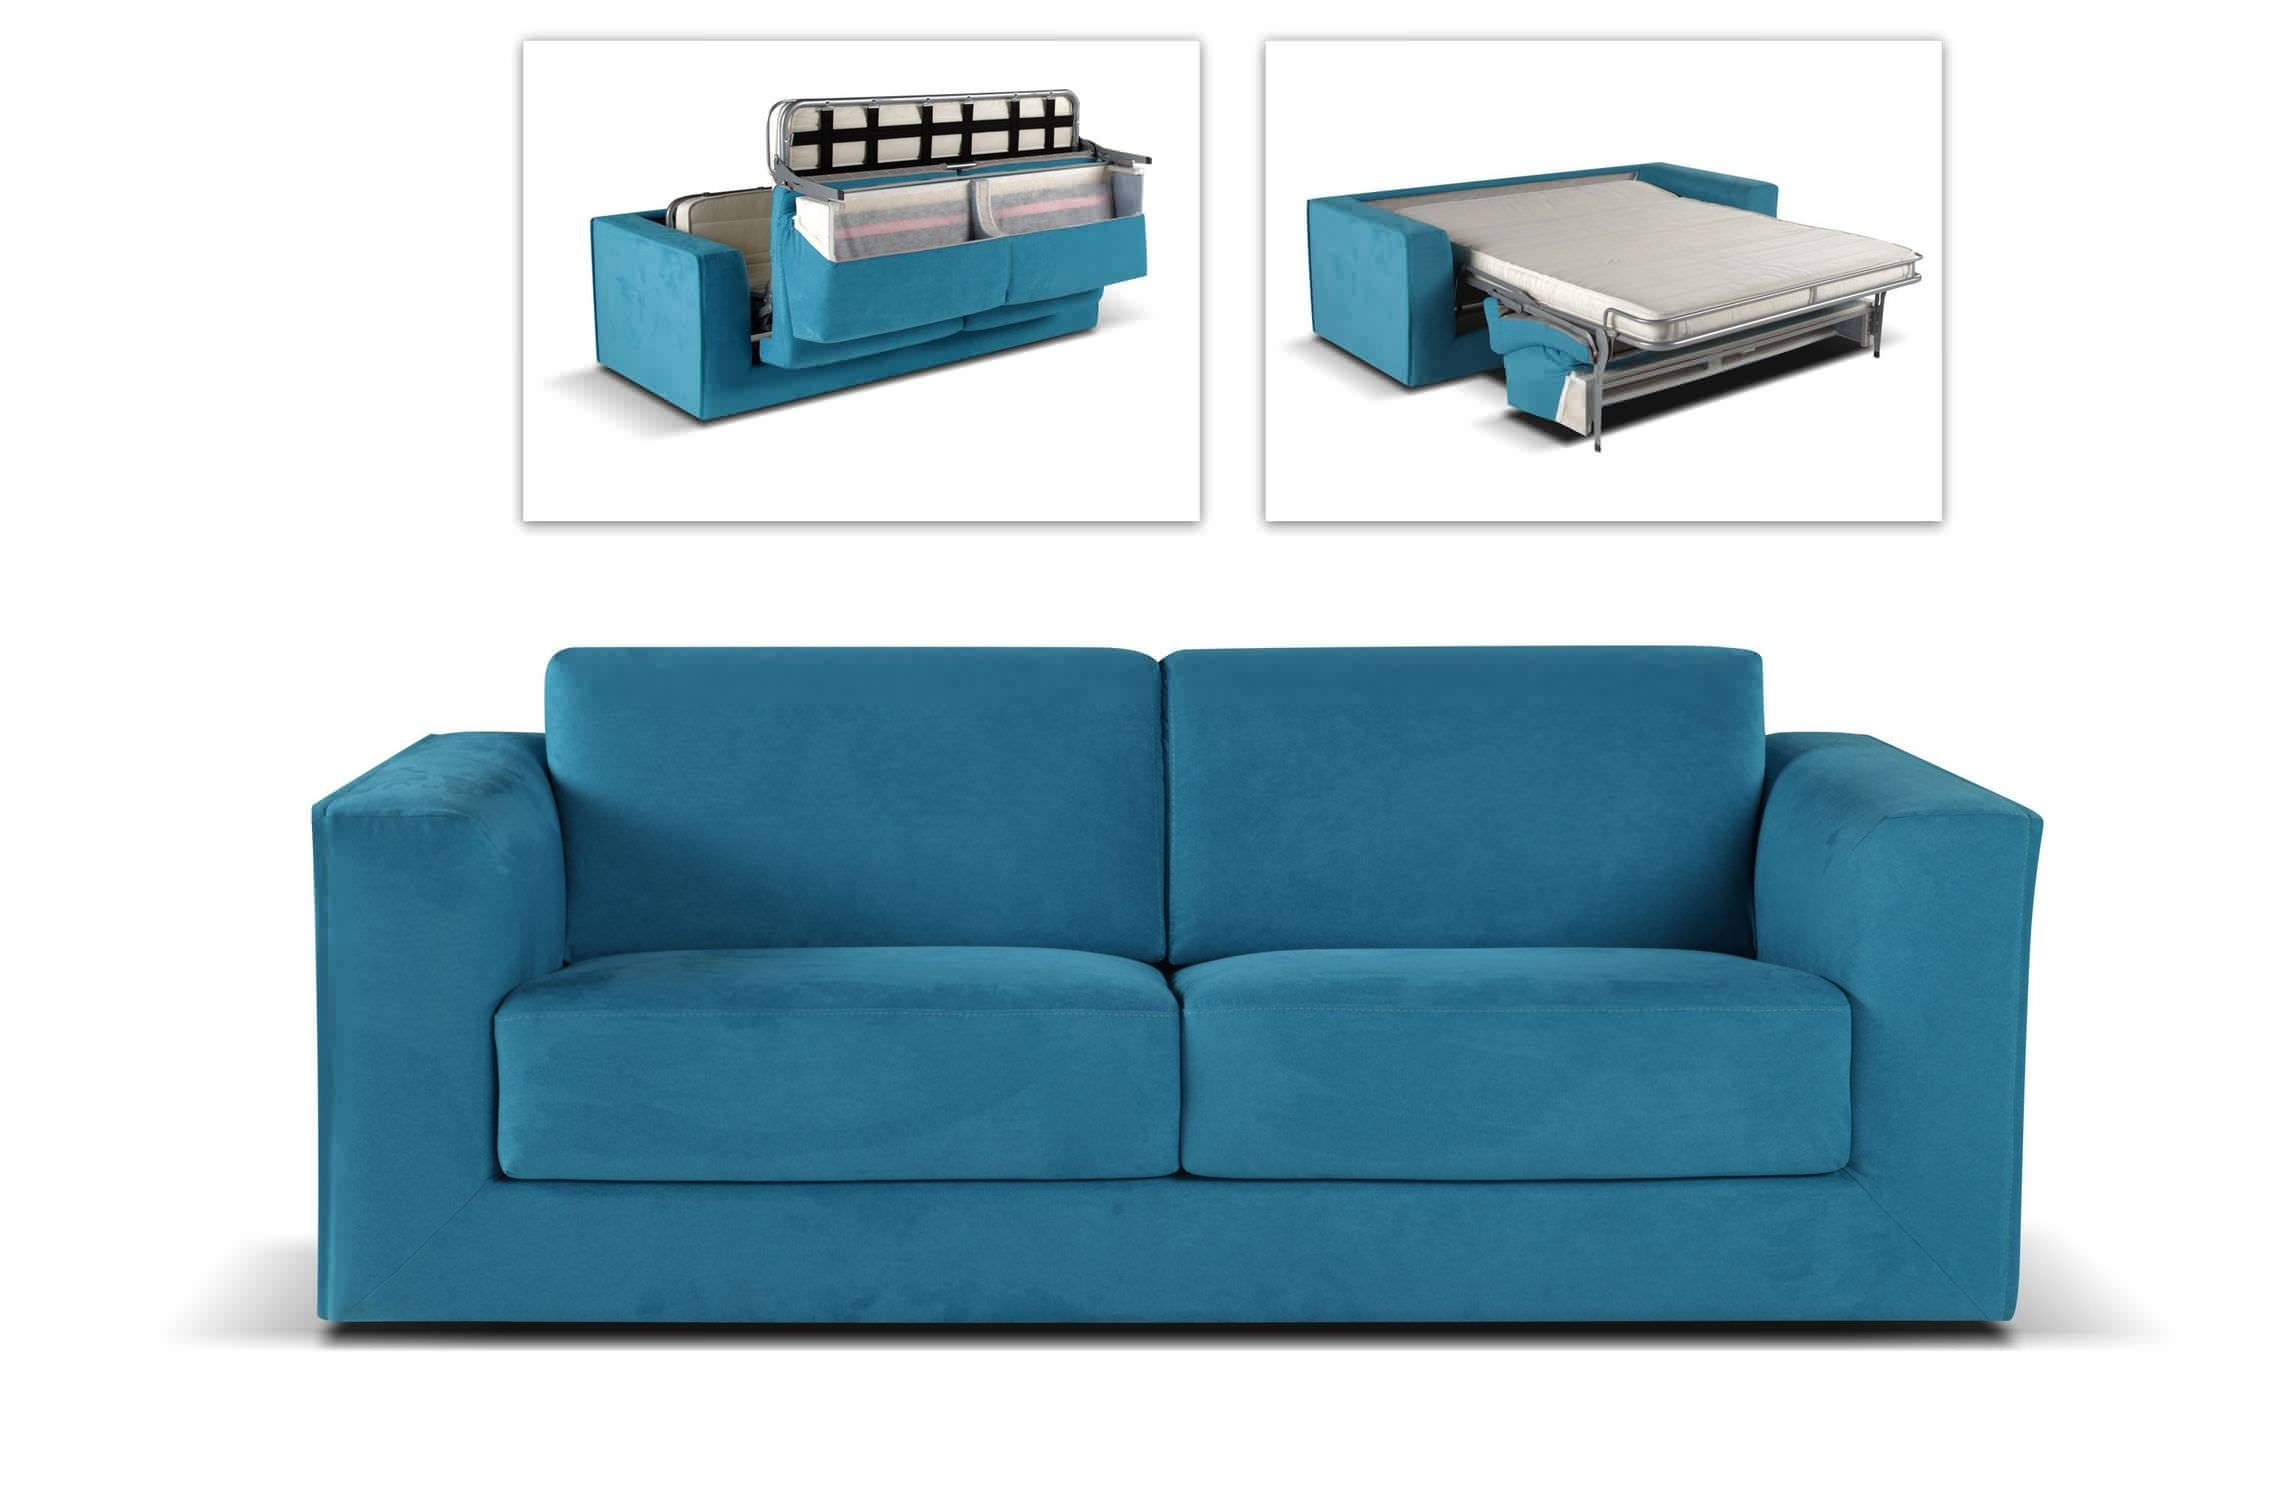 Furniture: Impressive Ikea Sofa Beds For Your Living Room — Mabas4 within Ikea Single Sofa Beds (Image 14 of 30)